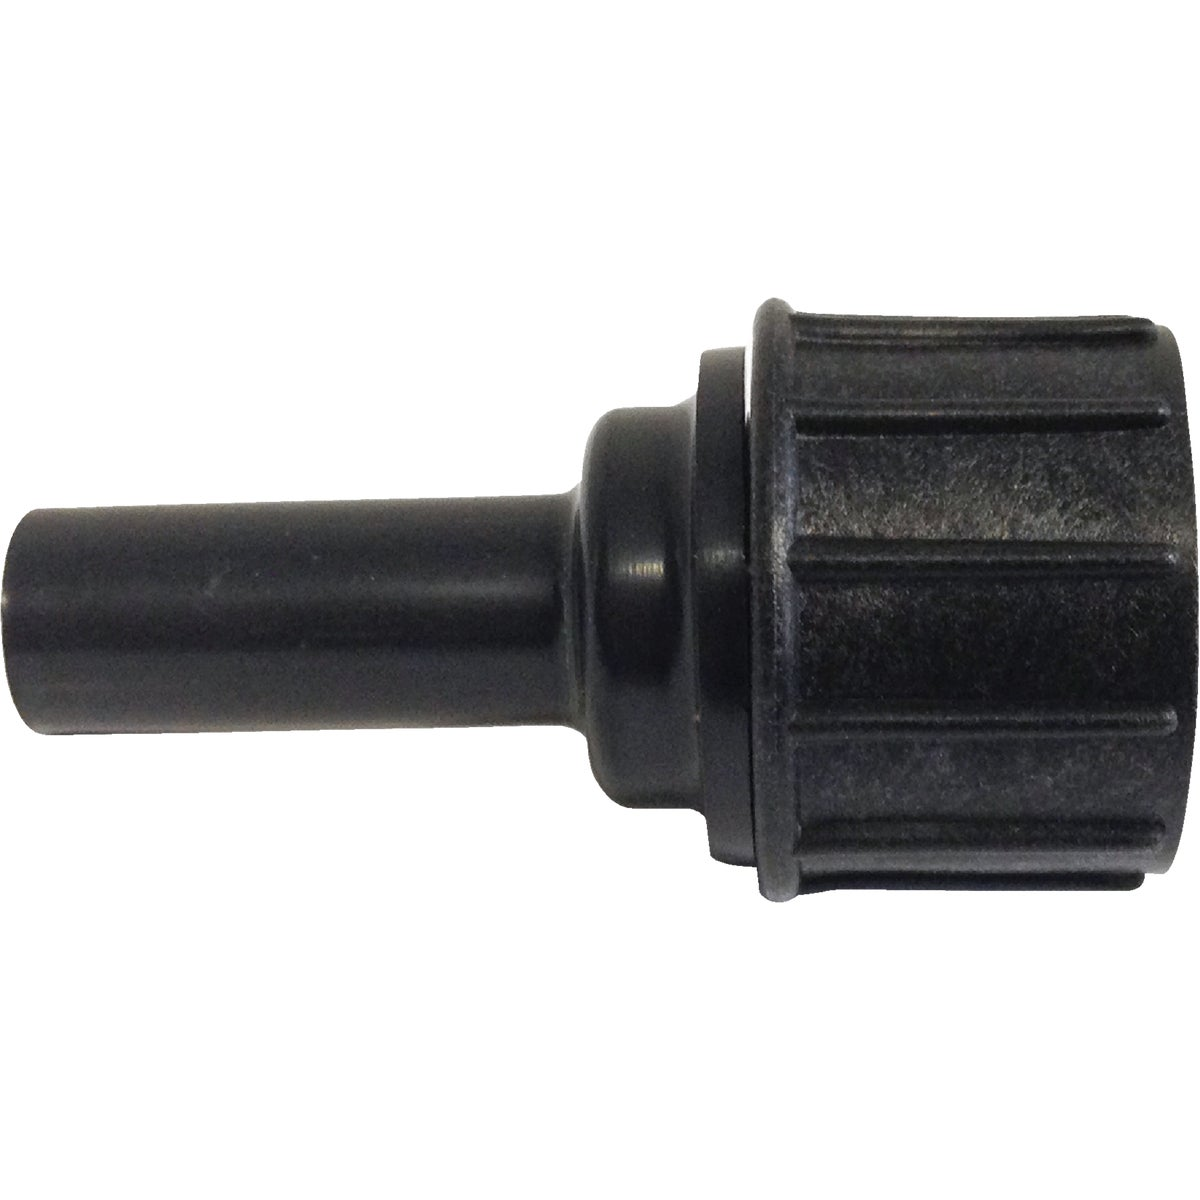 3/4X1/4 ADPT PIPE SWIVEL